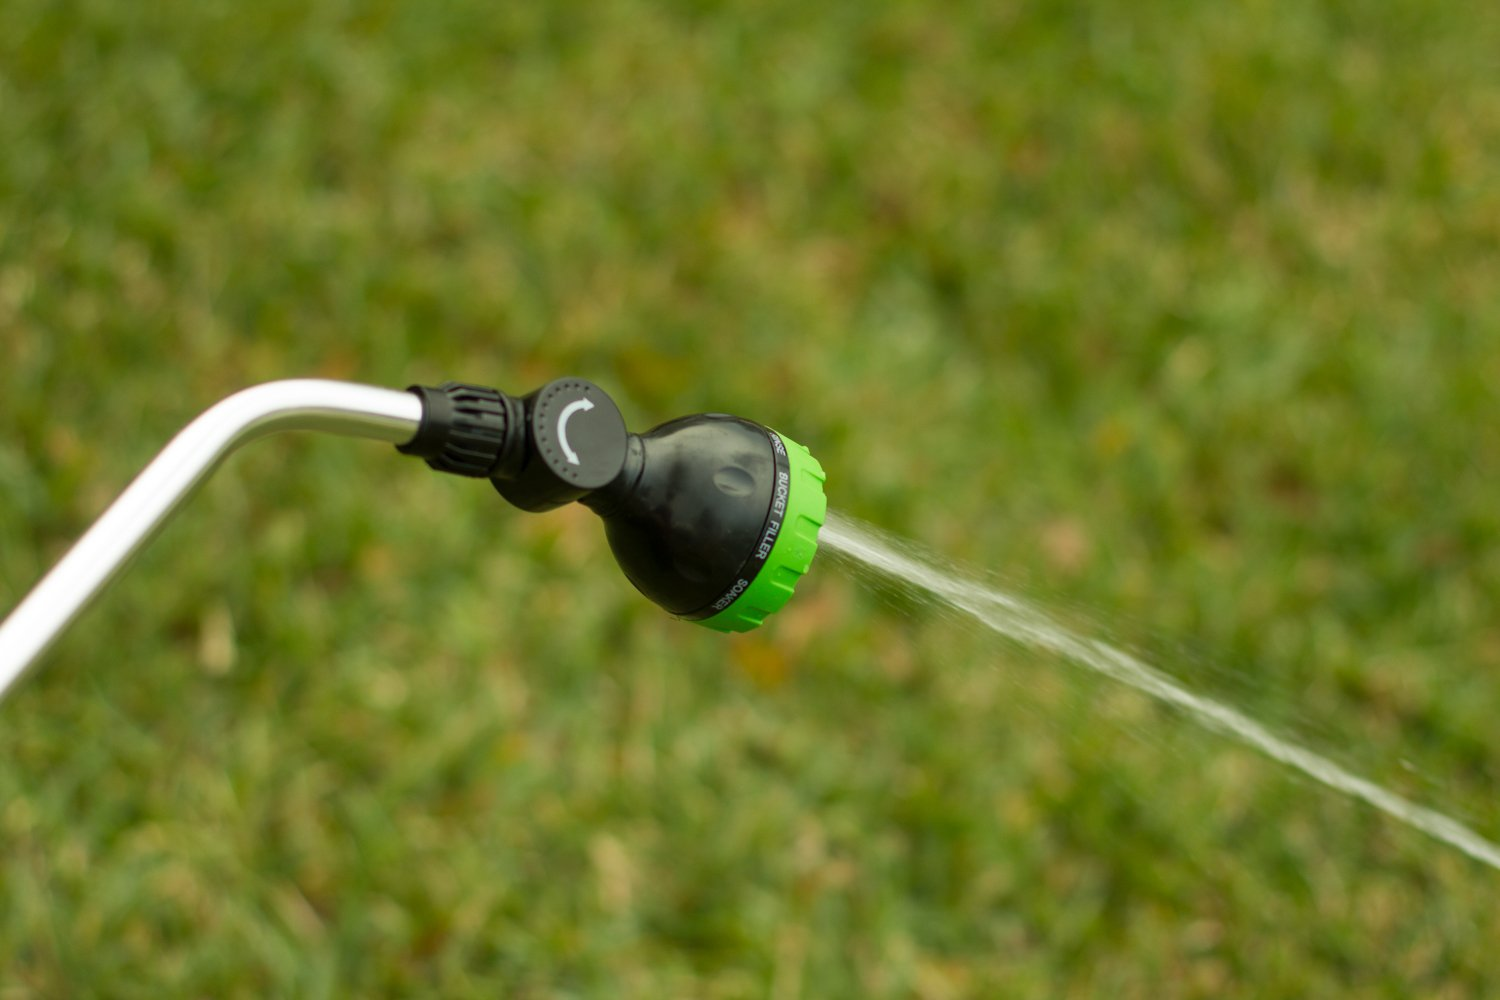 Garden Spray Watering Wand for Hose with 7 Nozzle Patterns and Easy Shut Off Valve for Lawns, Gardens, Baskets, Flowers, Shrubs, and More, 33 Inch Long Handle, by Garden Products USA by Garden Products USA (Image #5)